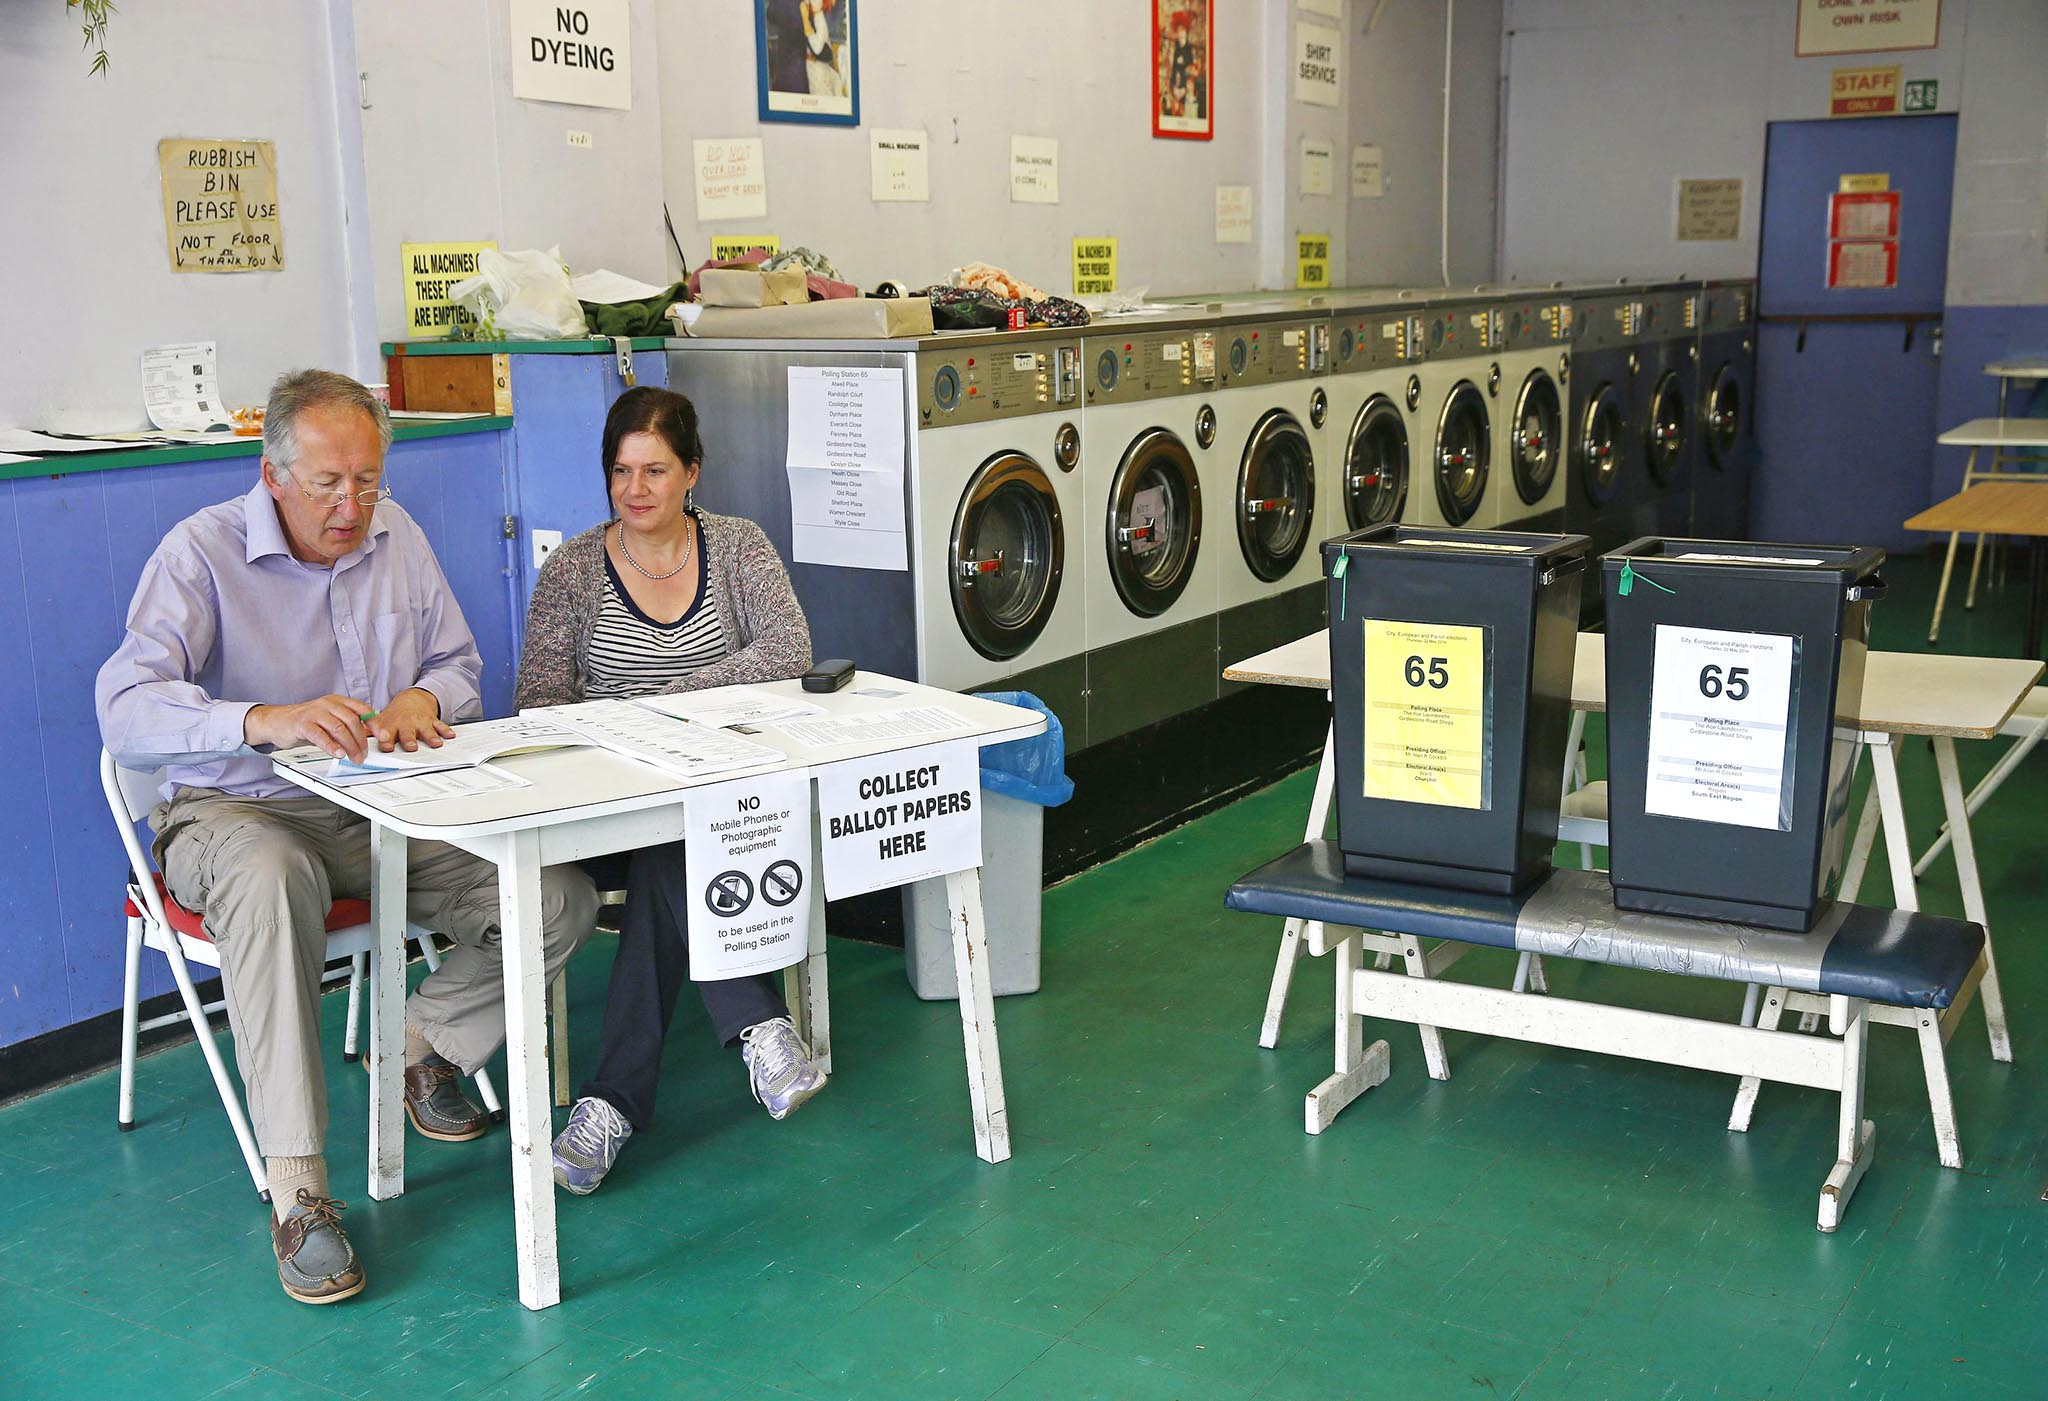 Poll clerks are seen in a launderette being used as a polling station in Oxford